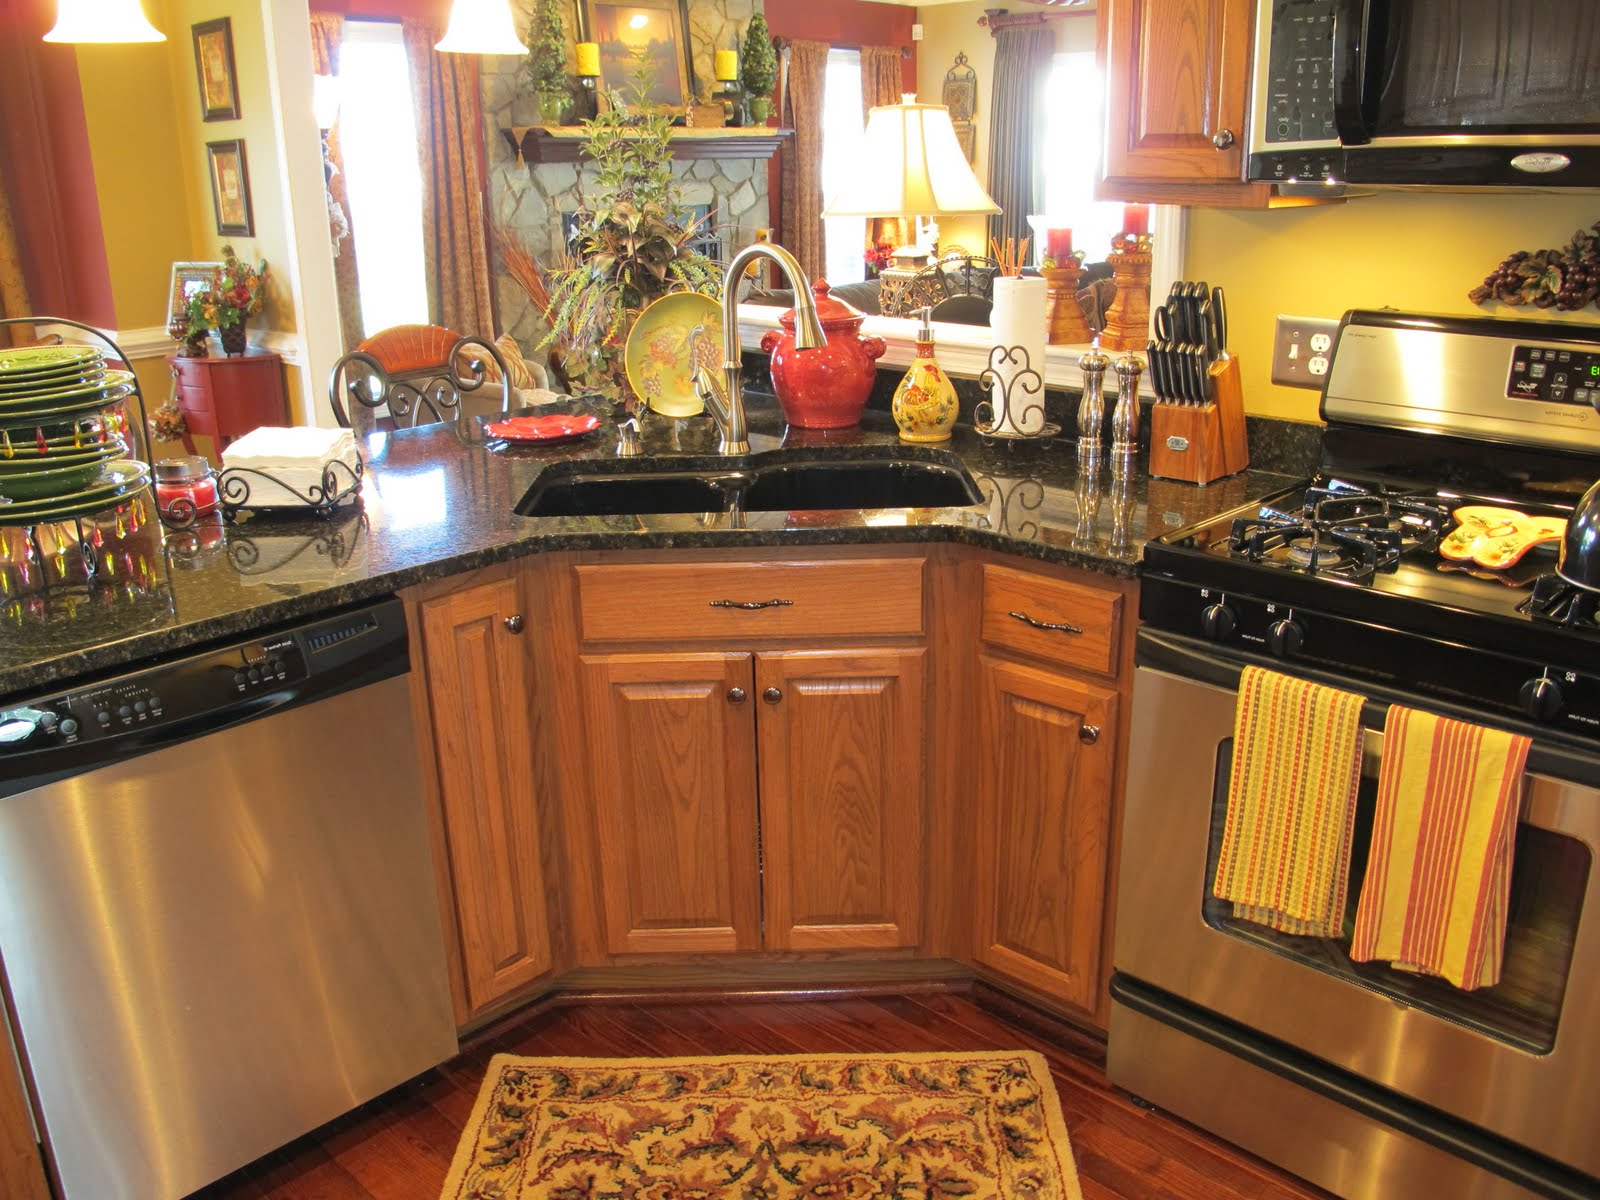 Kitchens Decorated With Sunflowers